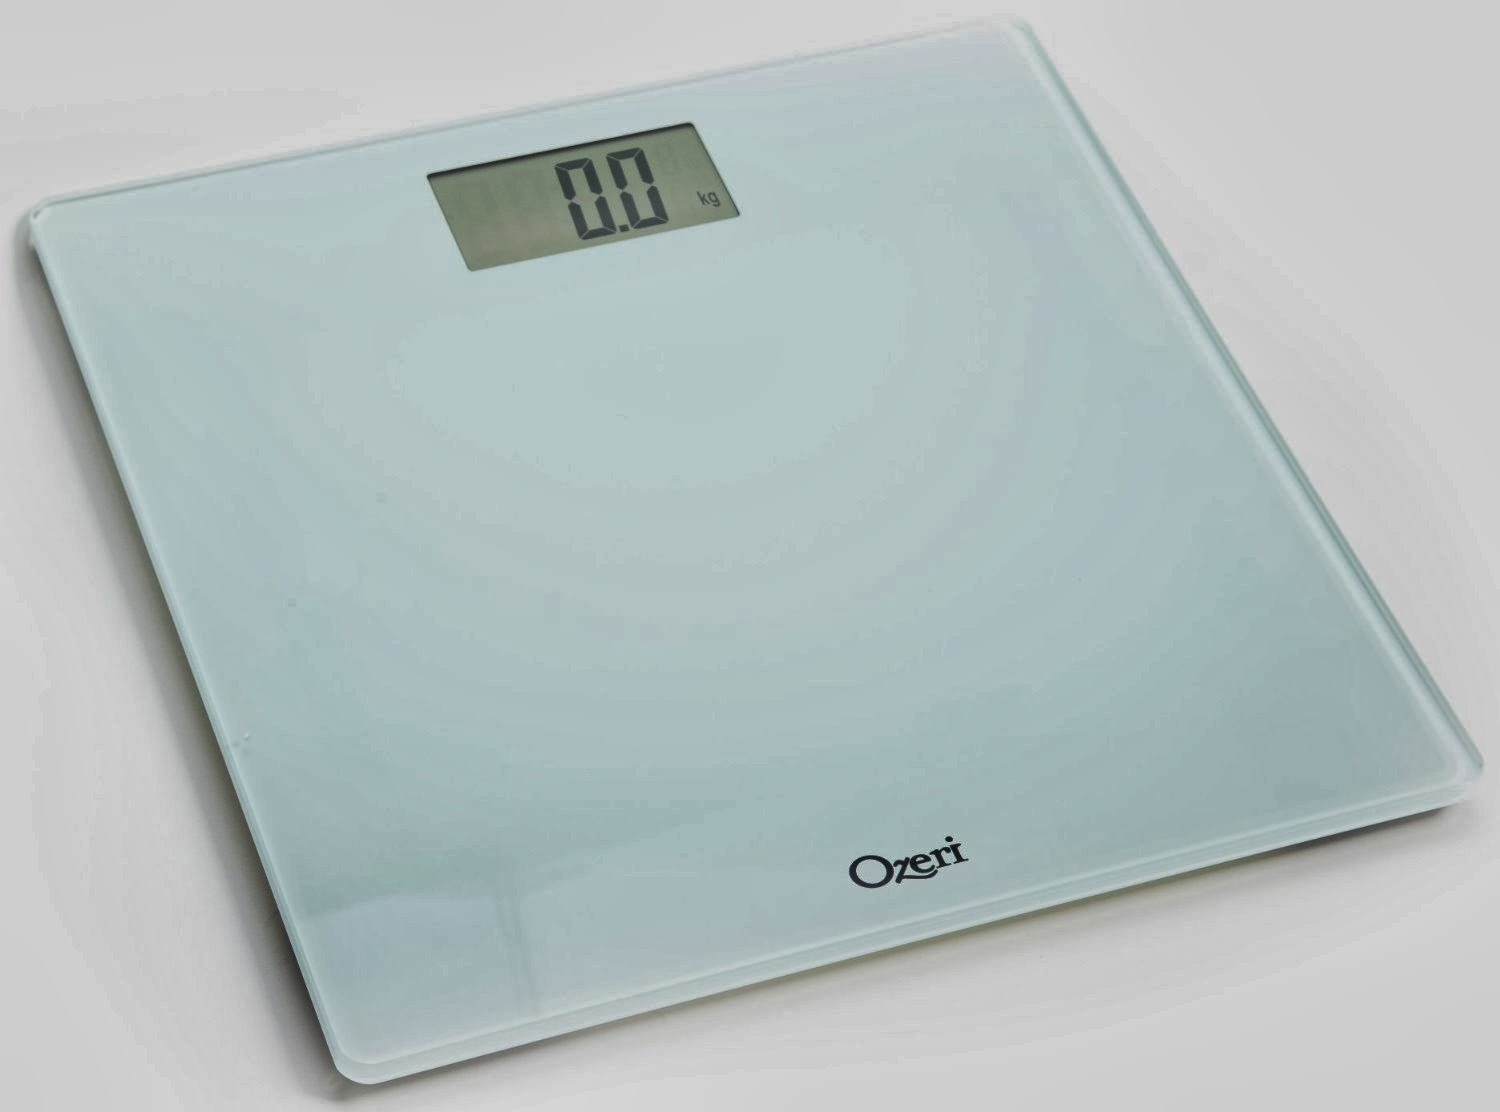 Never Pay Full Price Ozeri Precision Digital White Bath Scale Review